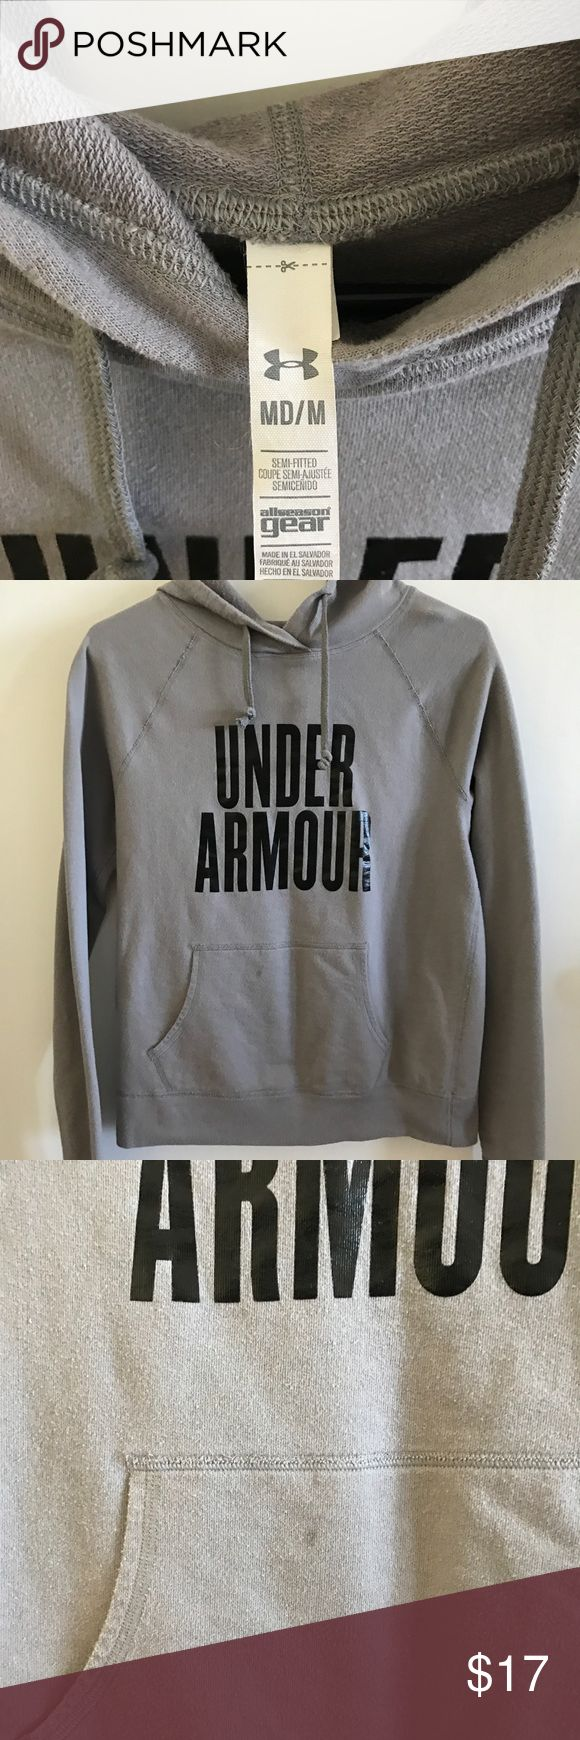 Under armour grey hooded sweatshirt sweater Good condition, however has a stain in front and on sleeve.  Please see picture! Under Armour Sweaters